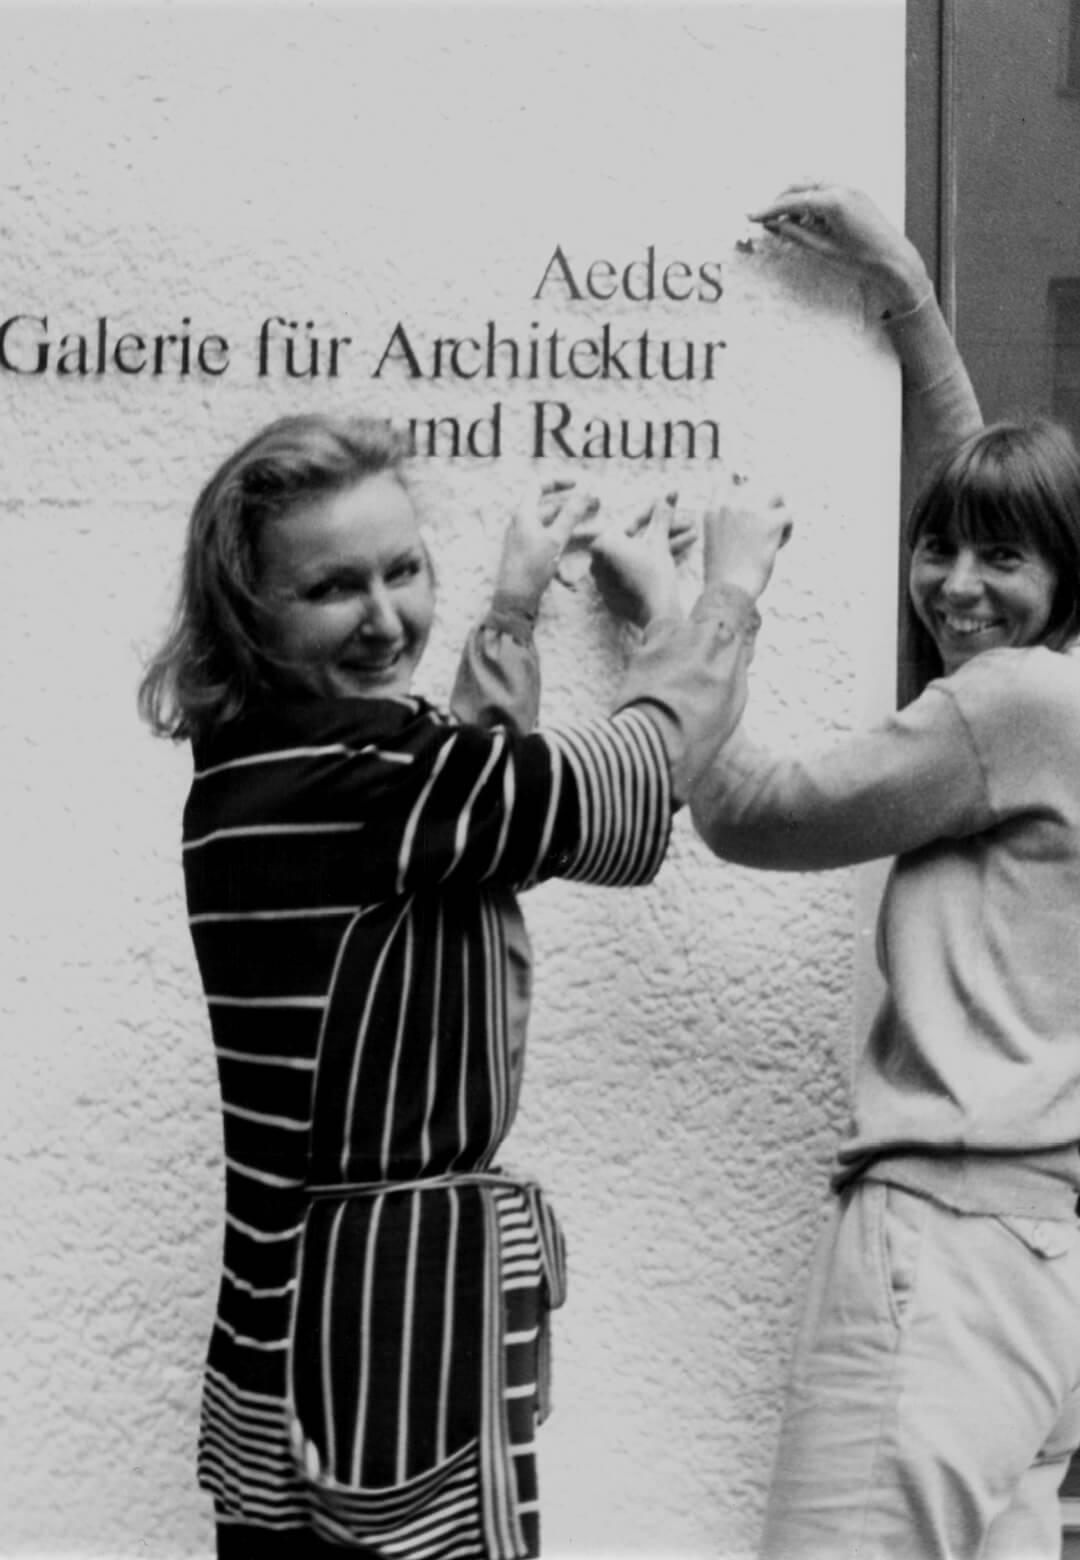 Kristin Feireiss and Helga Retzer in 1980, the year Aedes Architecture Forum was founded | Established in 1980, the Aedes Architecture Forum, Berlin, an independent institution and exhibition space for architecture gallery in Europe | STIRworld